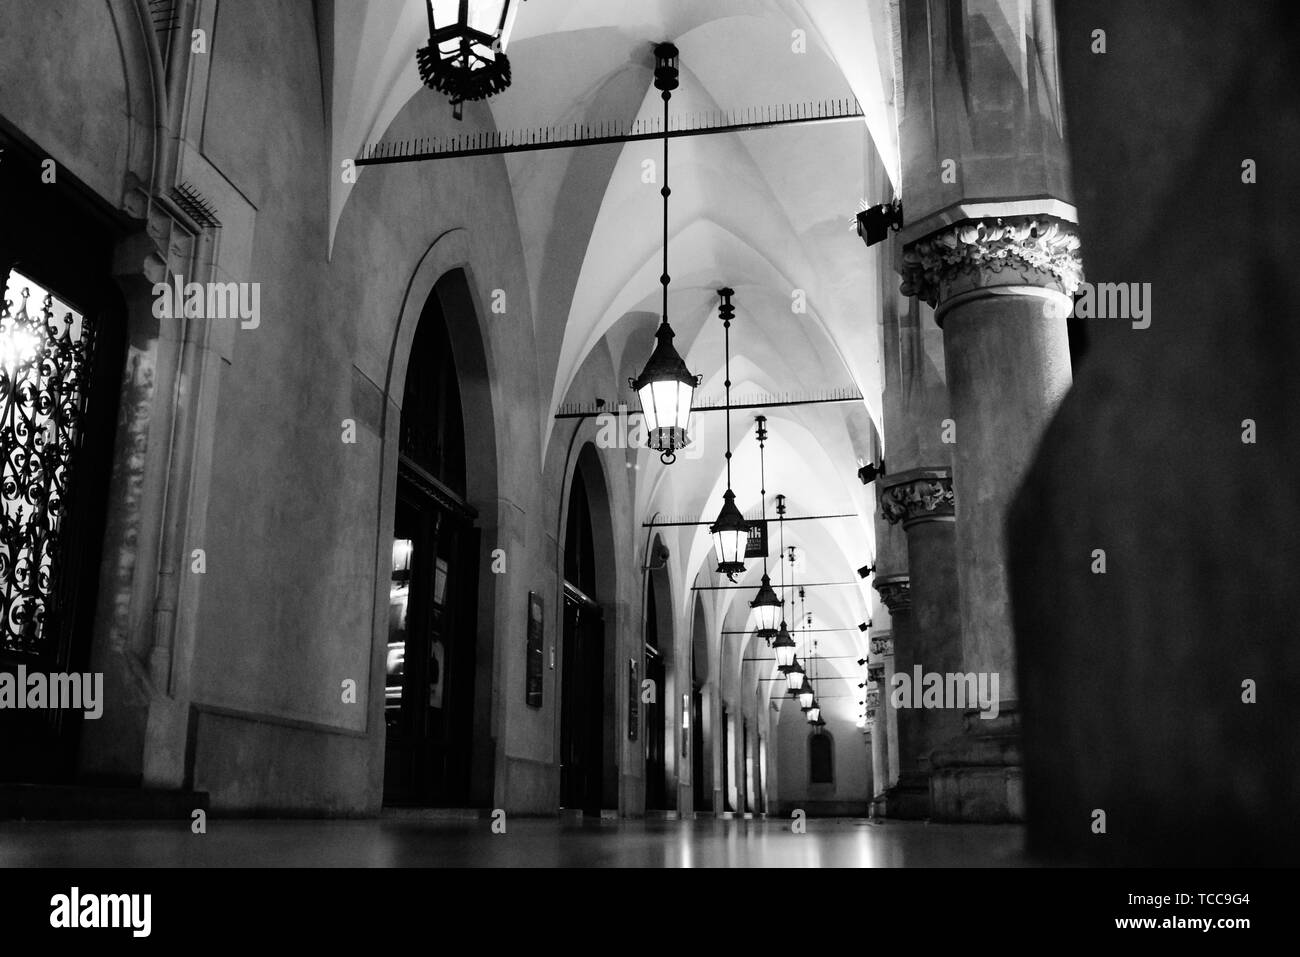 Night old commercial area of Krakow in the lights of street lamps. Old Europe. - Stock Image